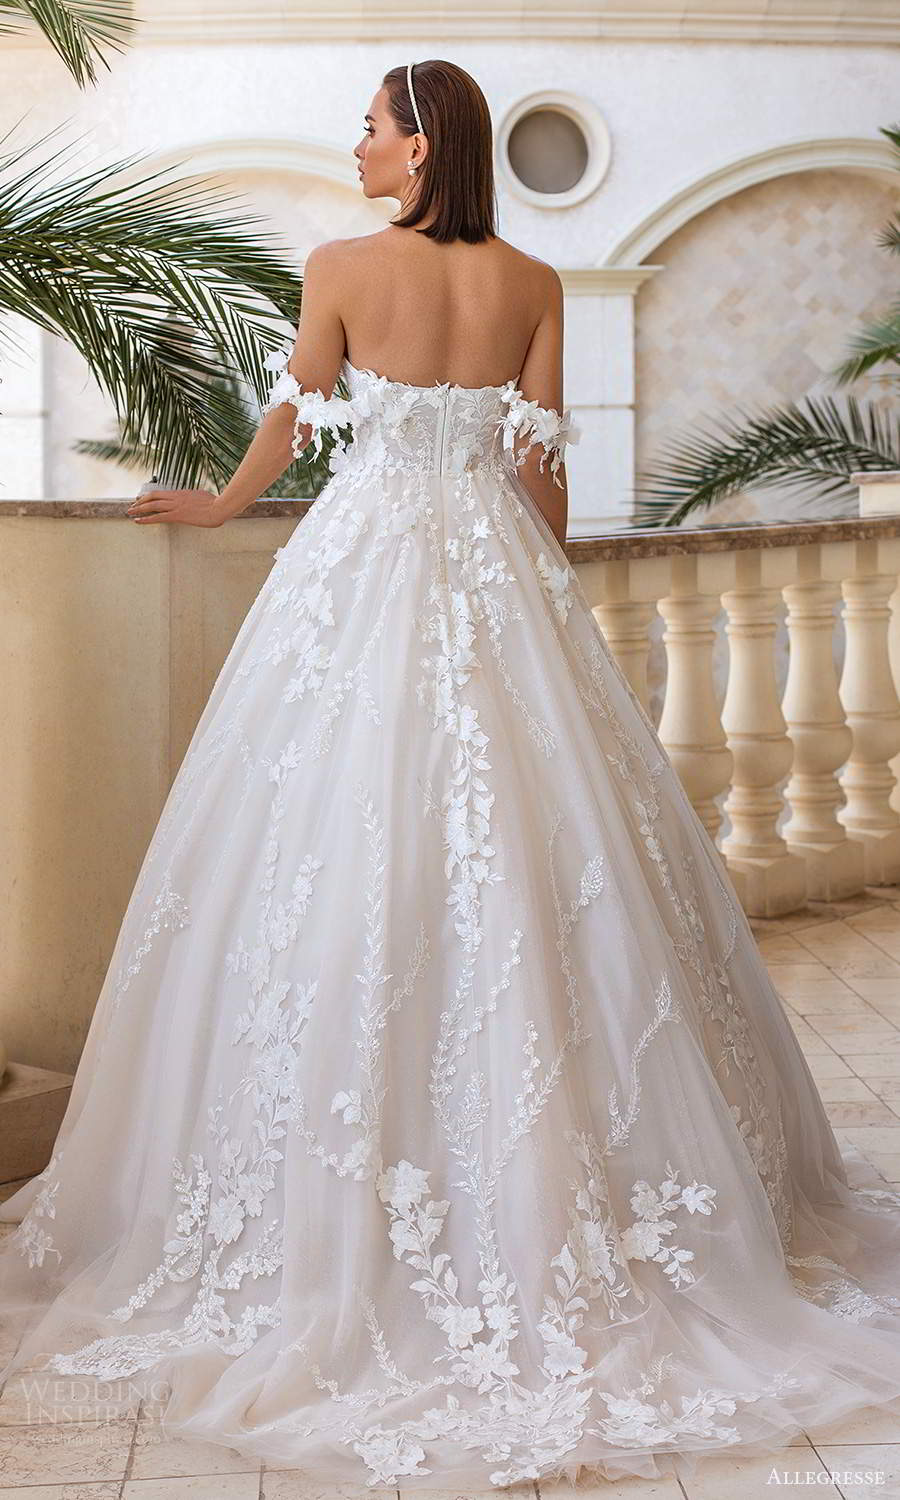 allegresse 2021 bridal off shoulder straps sweetheart neckline fully embellished a line ball gown wedding dress chapel train (15) bv